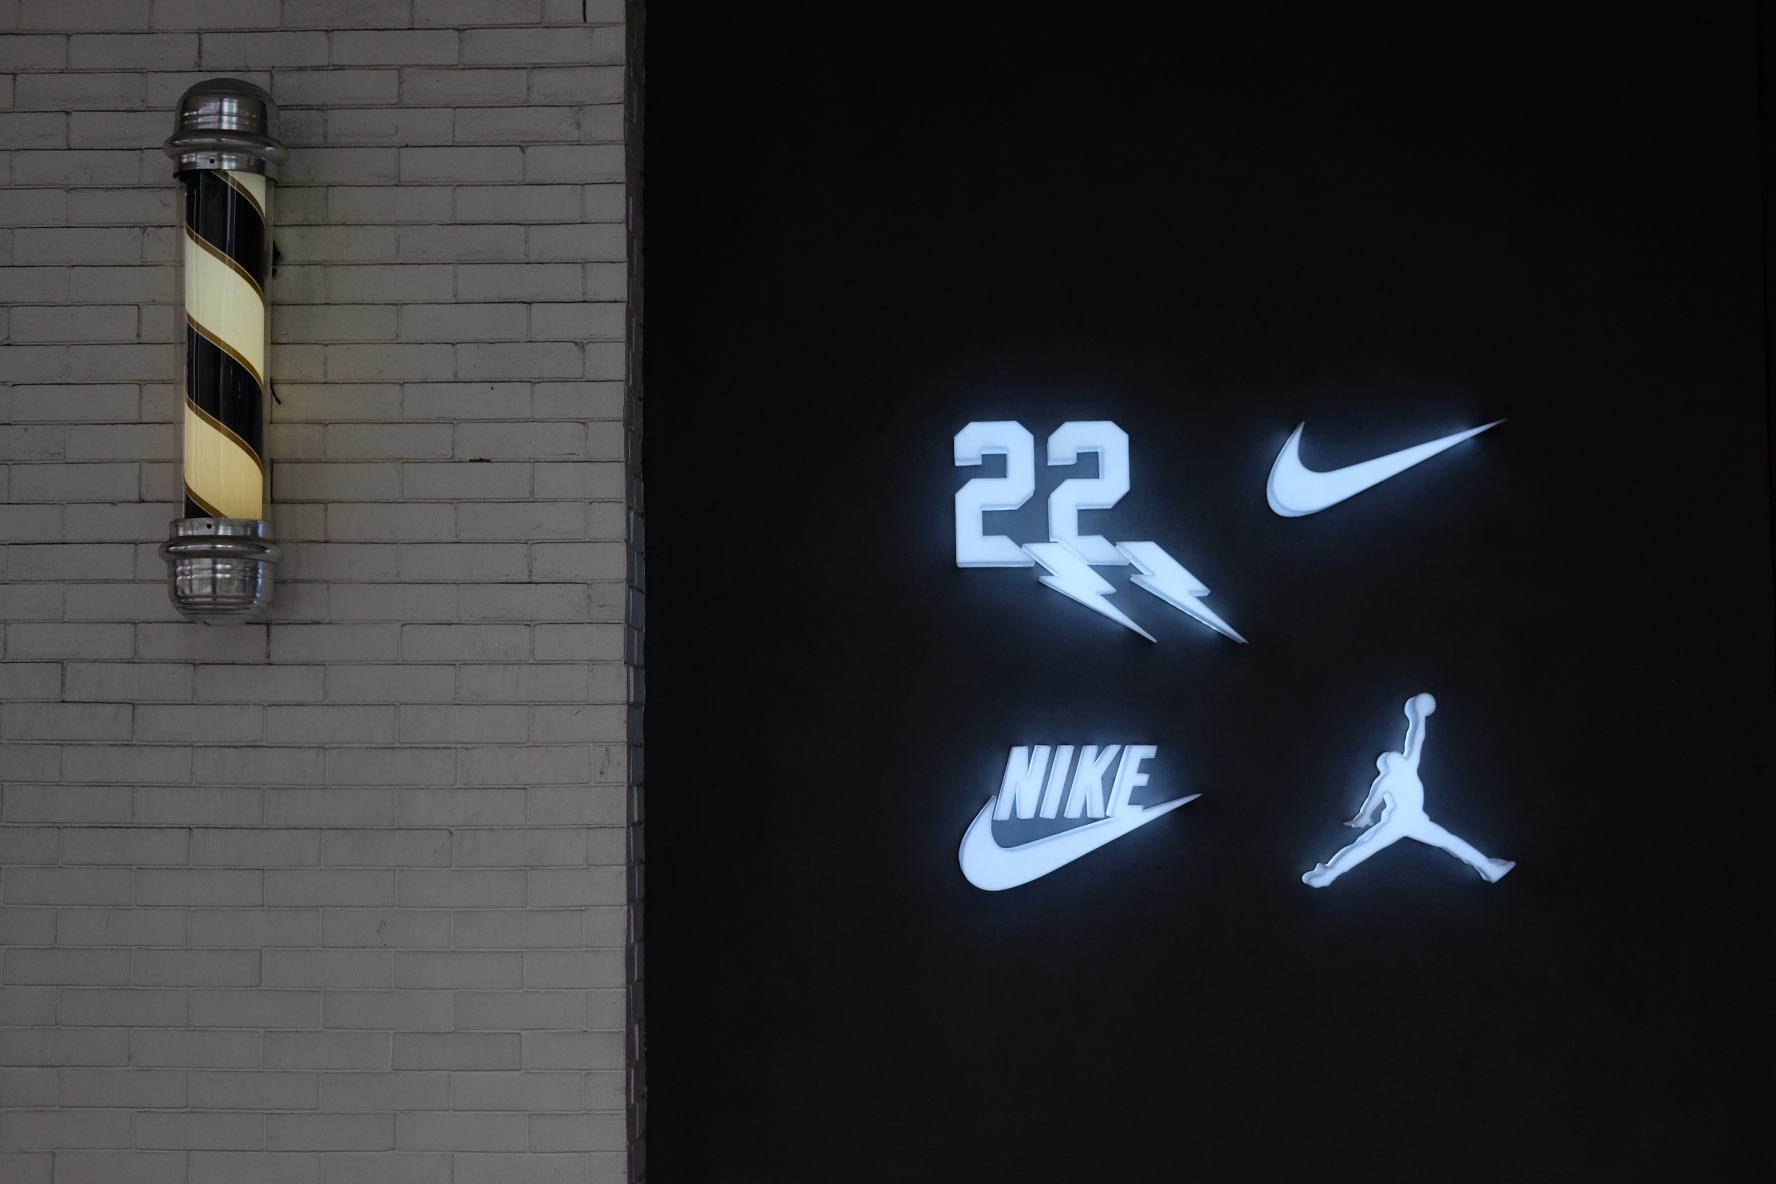 Nike teams up with Titan to celebrate the hoop culture